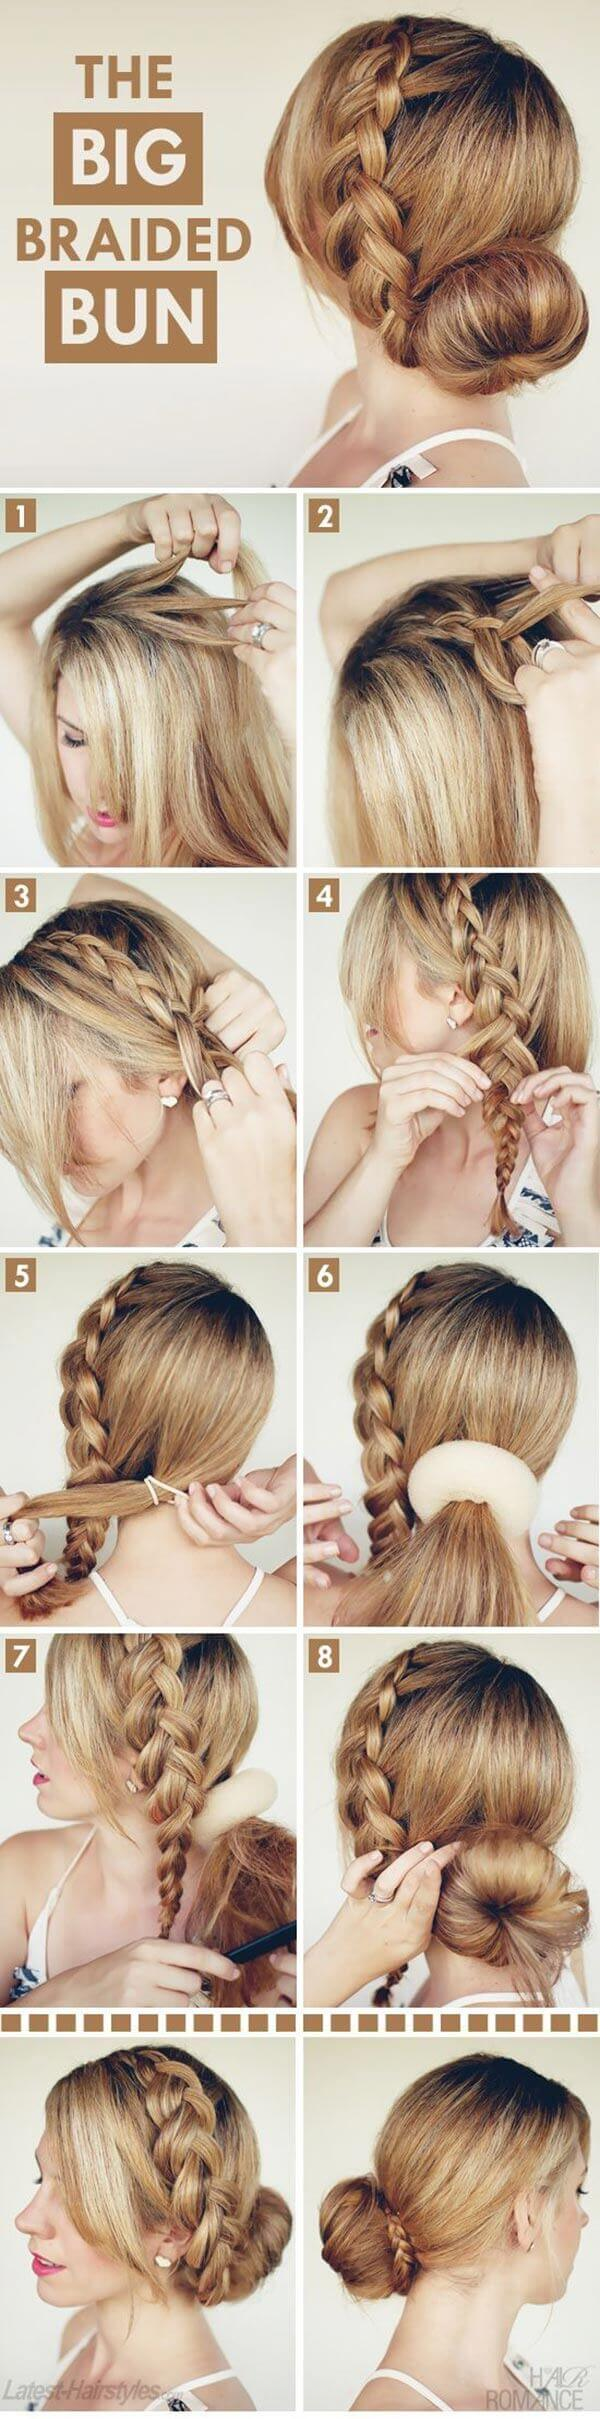 Big braided hairstyle bun